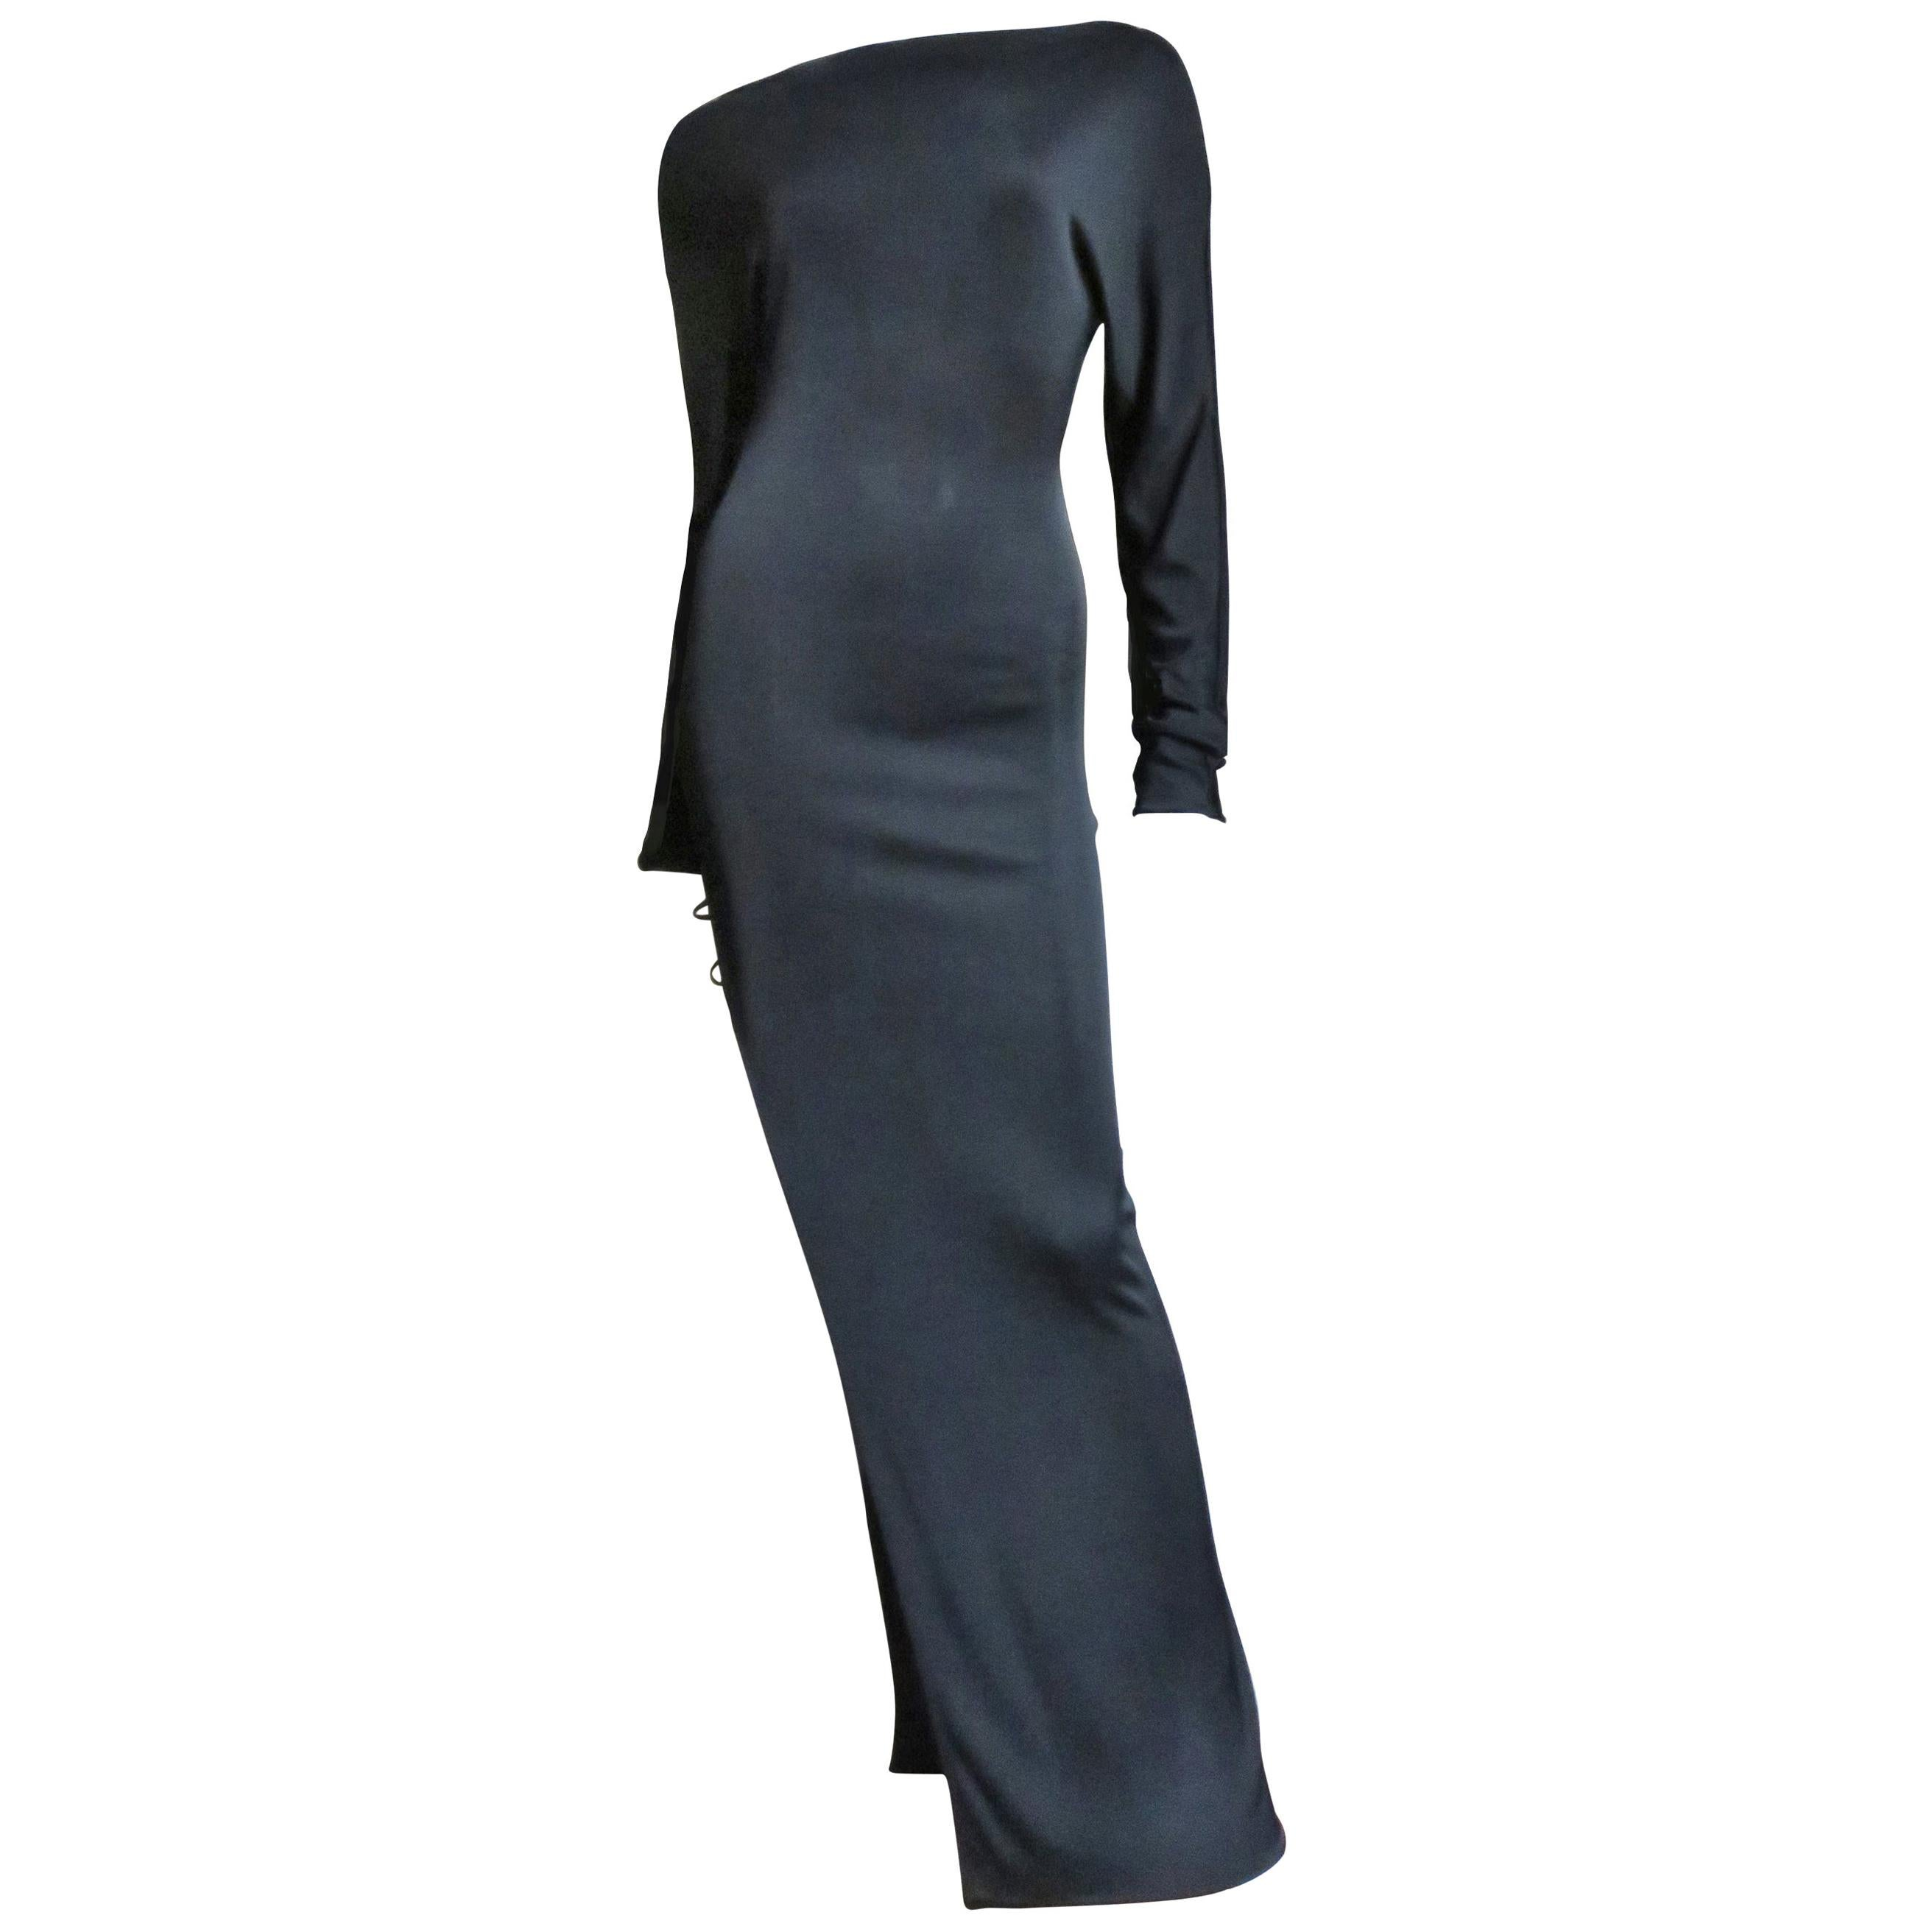 Trussardi Gown with Side Slit and Leather Straps